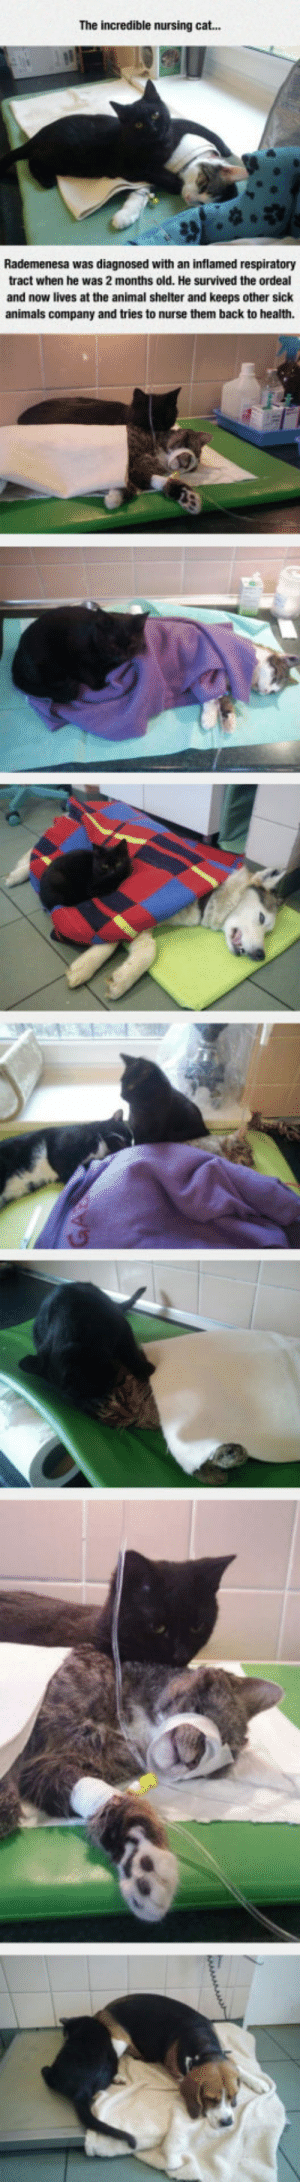 epicjohndoe:  The Nursing Cat: The incredible nursing cat...  Rademenesa was diagnosed with an inflamed respiratory  tract when he was 2 months old. He survived the ordeal  and now lives at the animal shelter and keeps other sick  animals company and tries to nurse them back to health. epicjohndoe:  The Nursing Cat